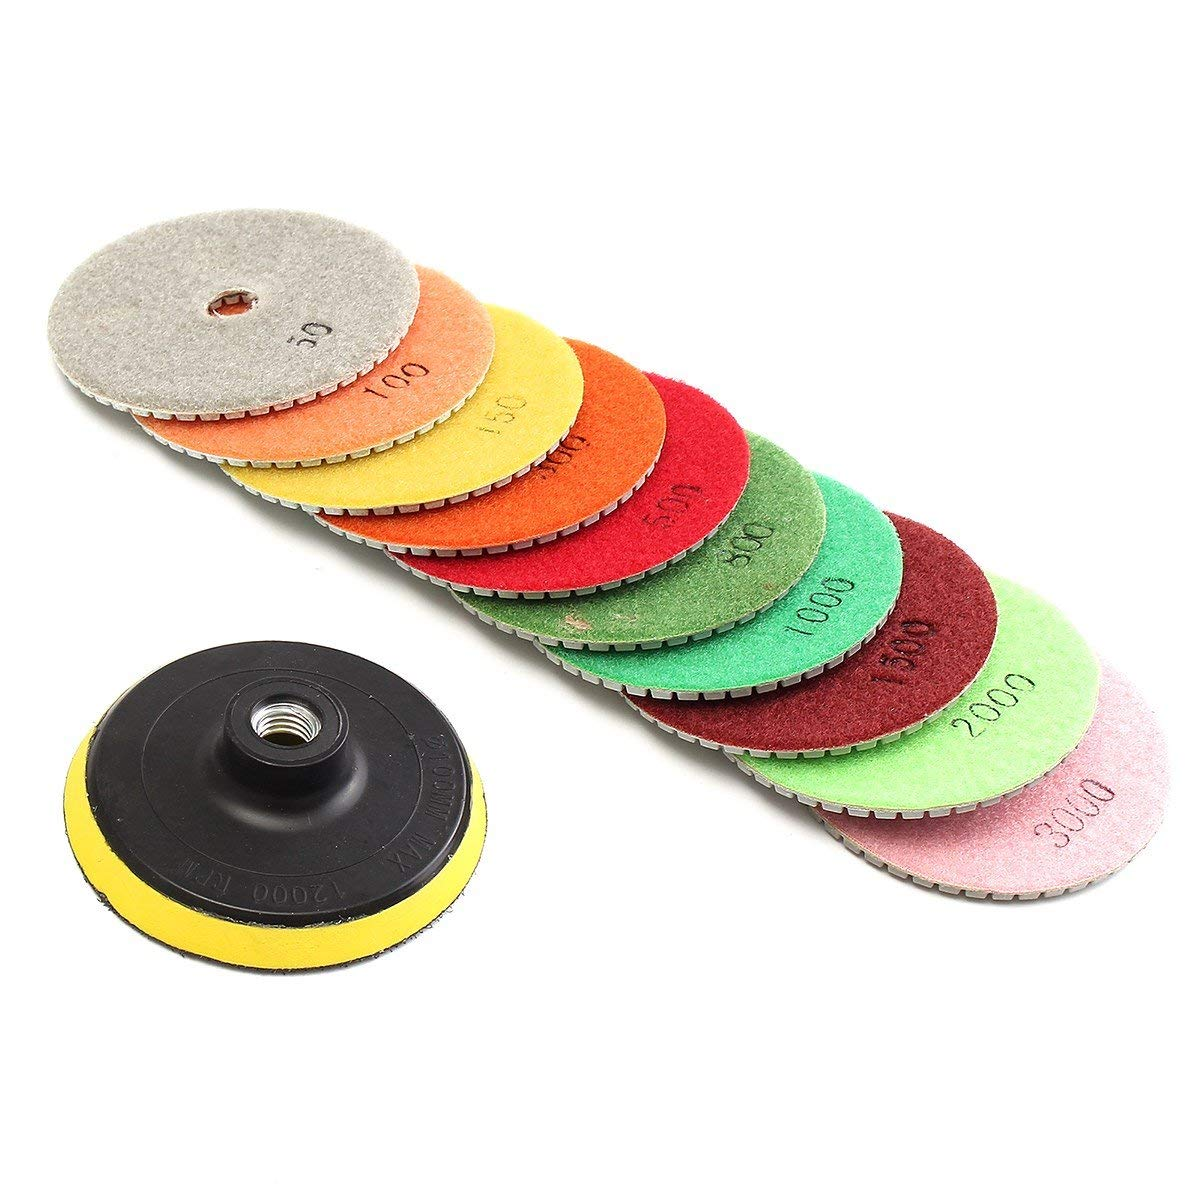 "ToolsCentre 11pcs/set 4"" Diamond Polishing Pads Grinding Disc For Granite Marble Concrete Stone For Granite Concrete Marble Stone Tiles"